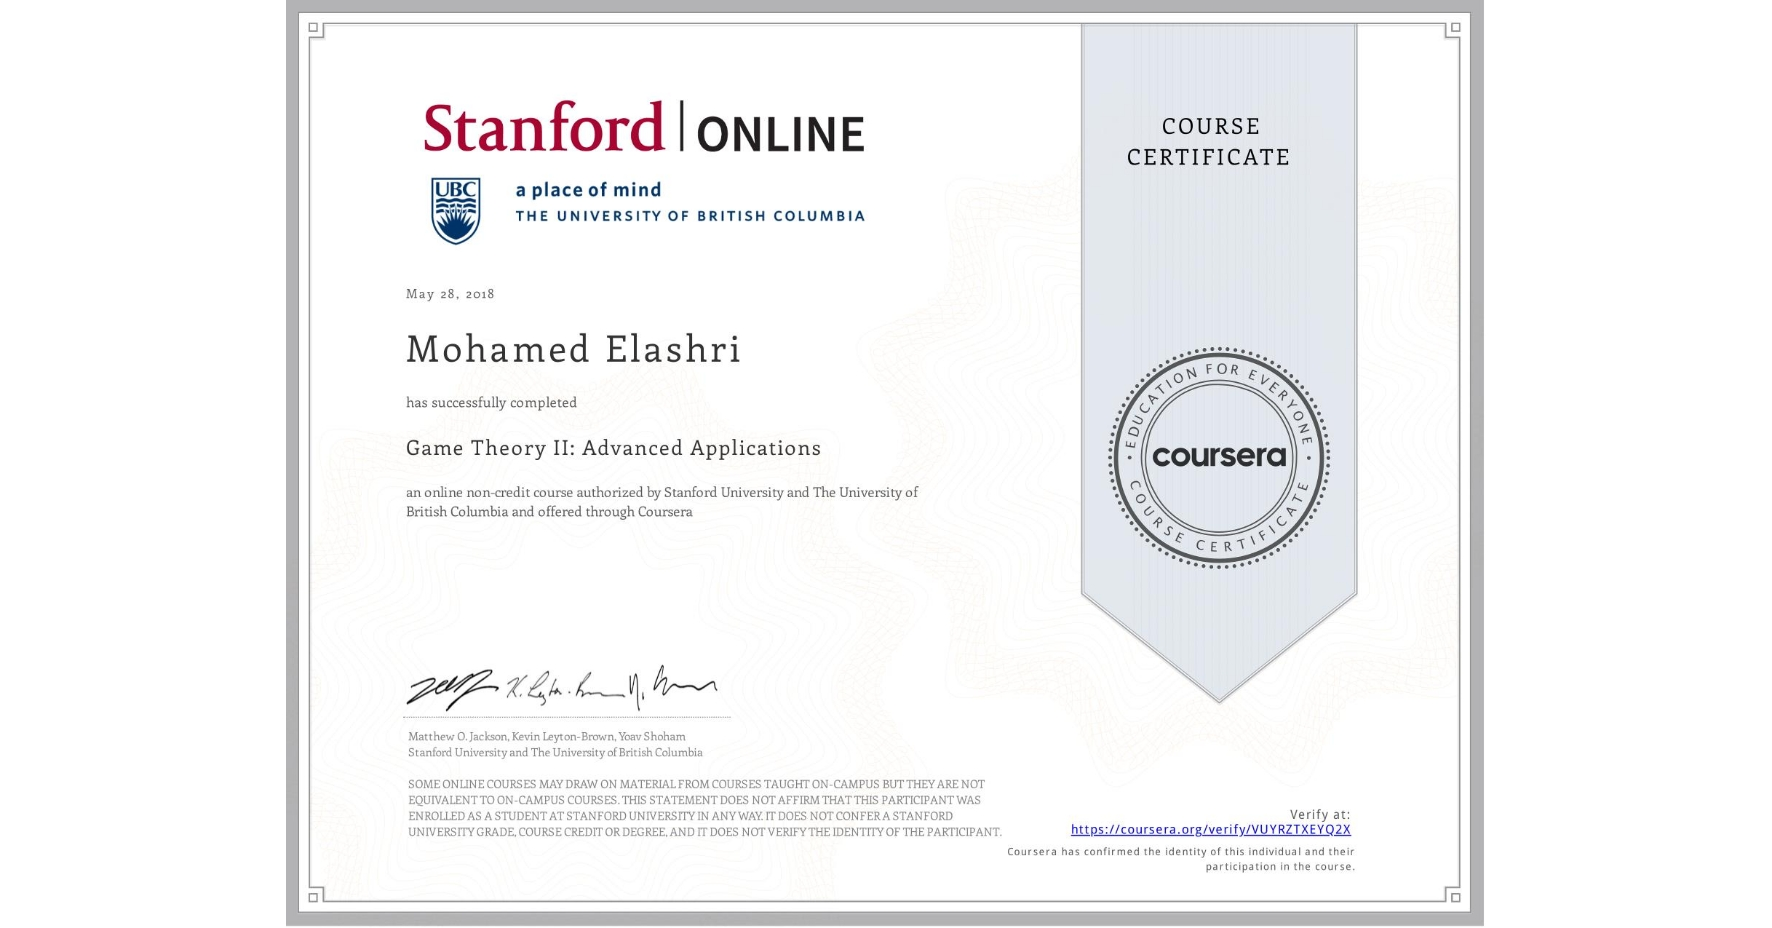 View certificate for Mohamed Elashri, Game Theory II: Advanced Applications, an online non-credit course authorized by Stanford University & The University of British Columbia and offered through Coursera